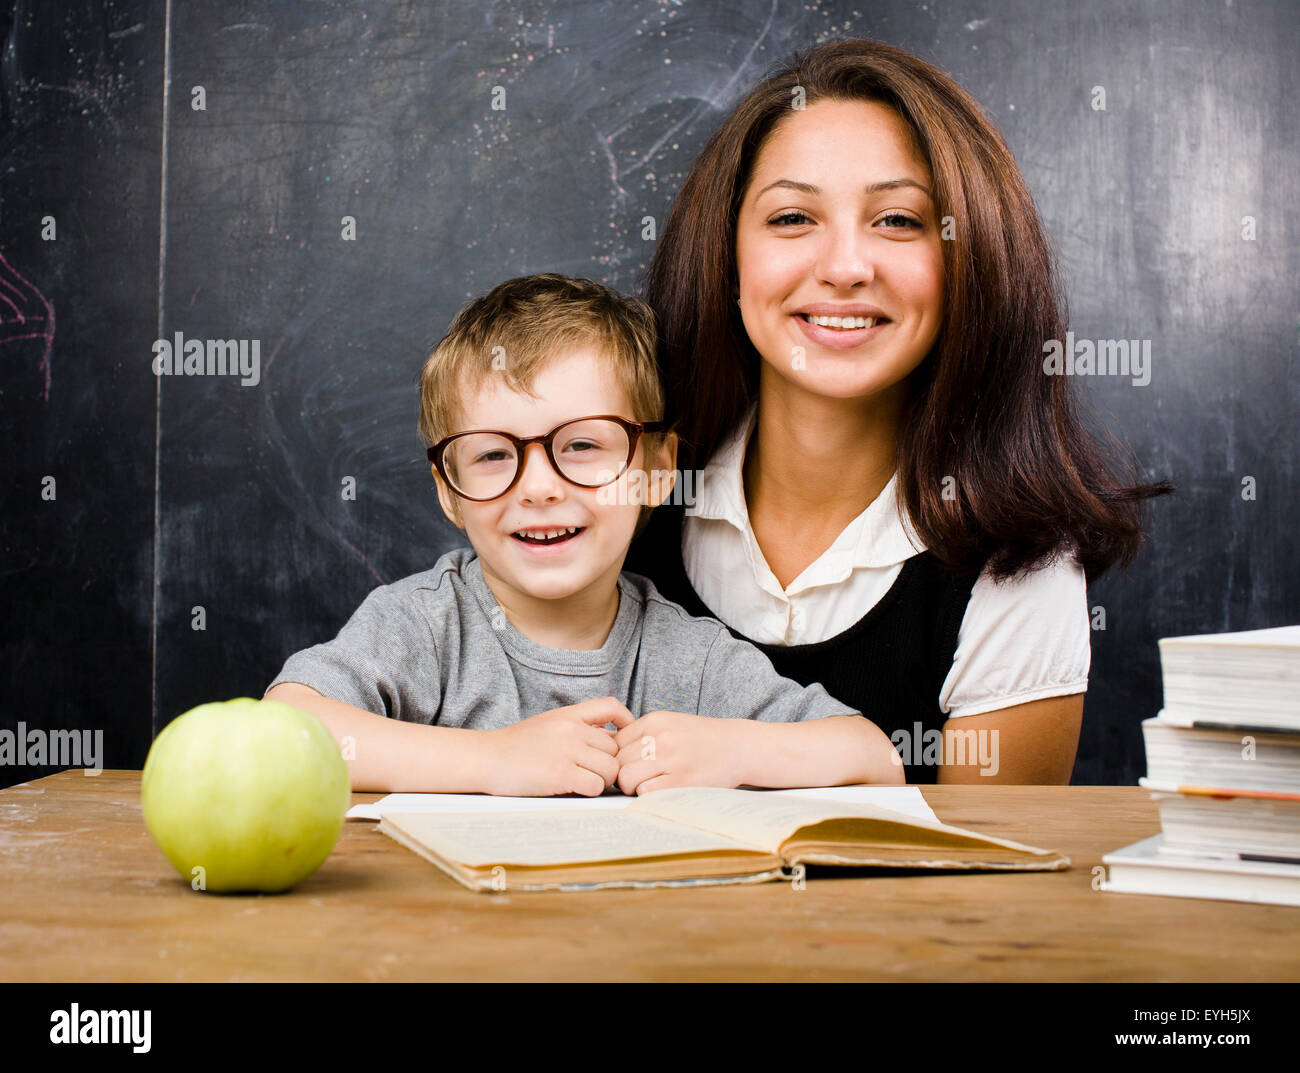 Real teacher and student